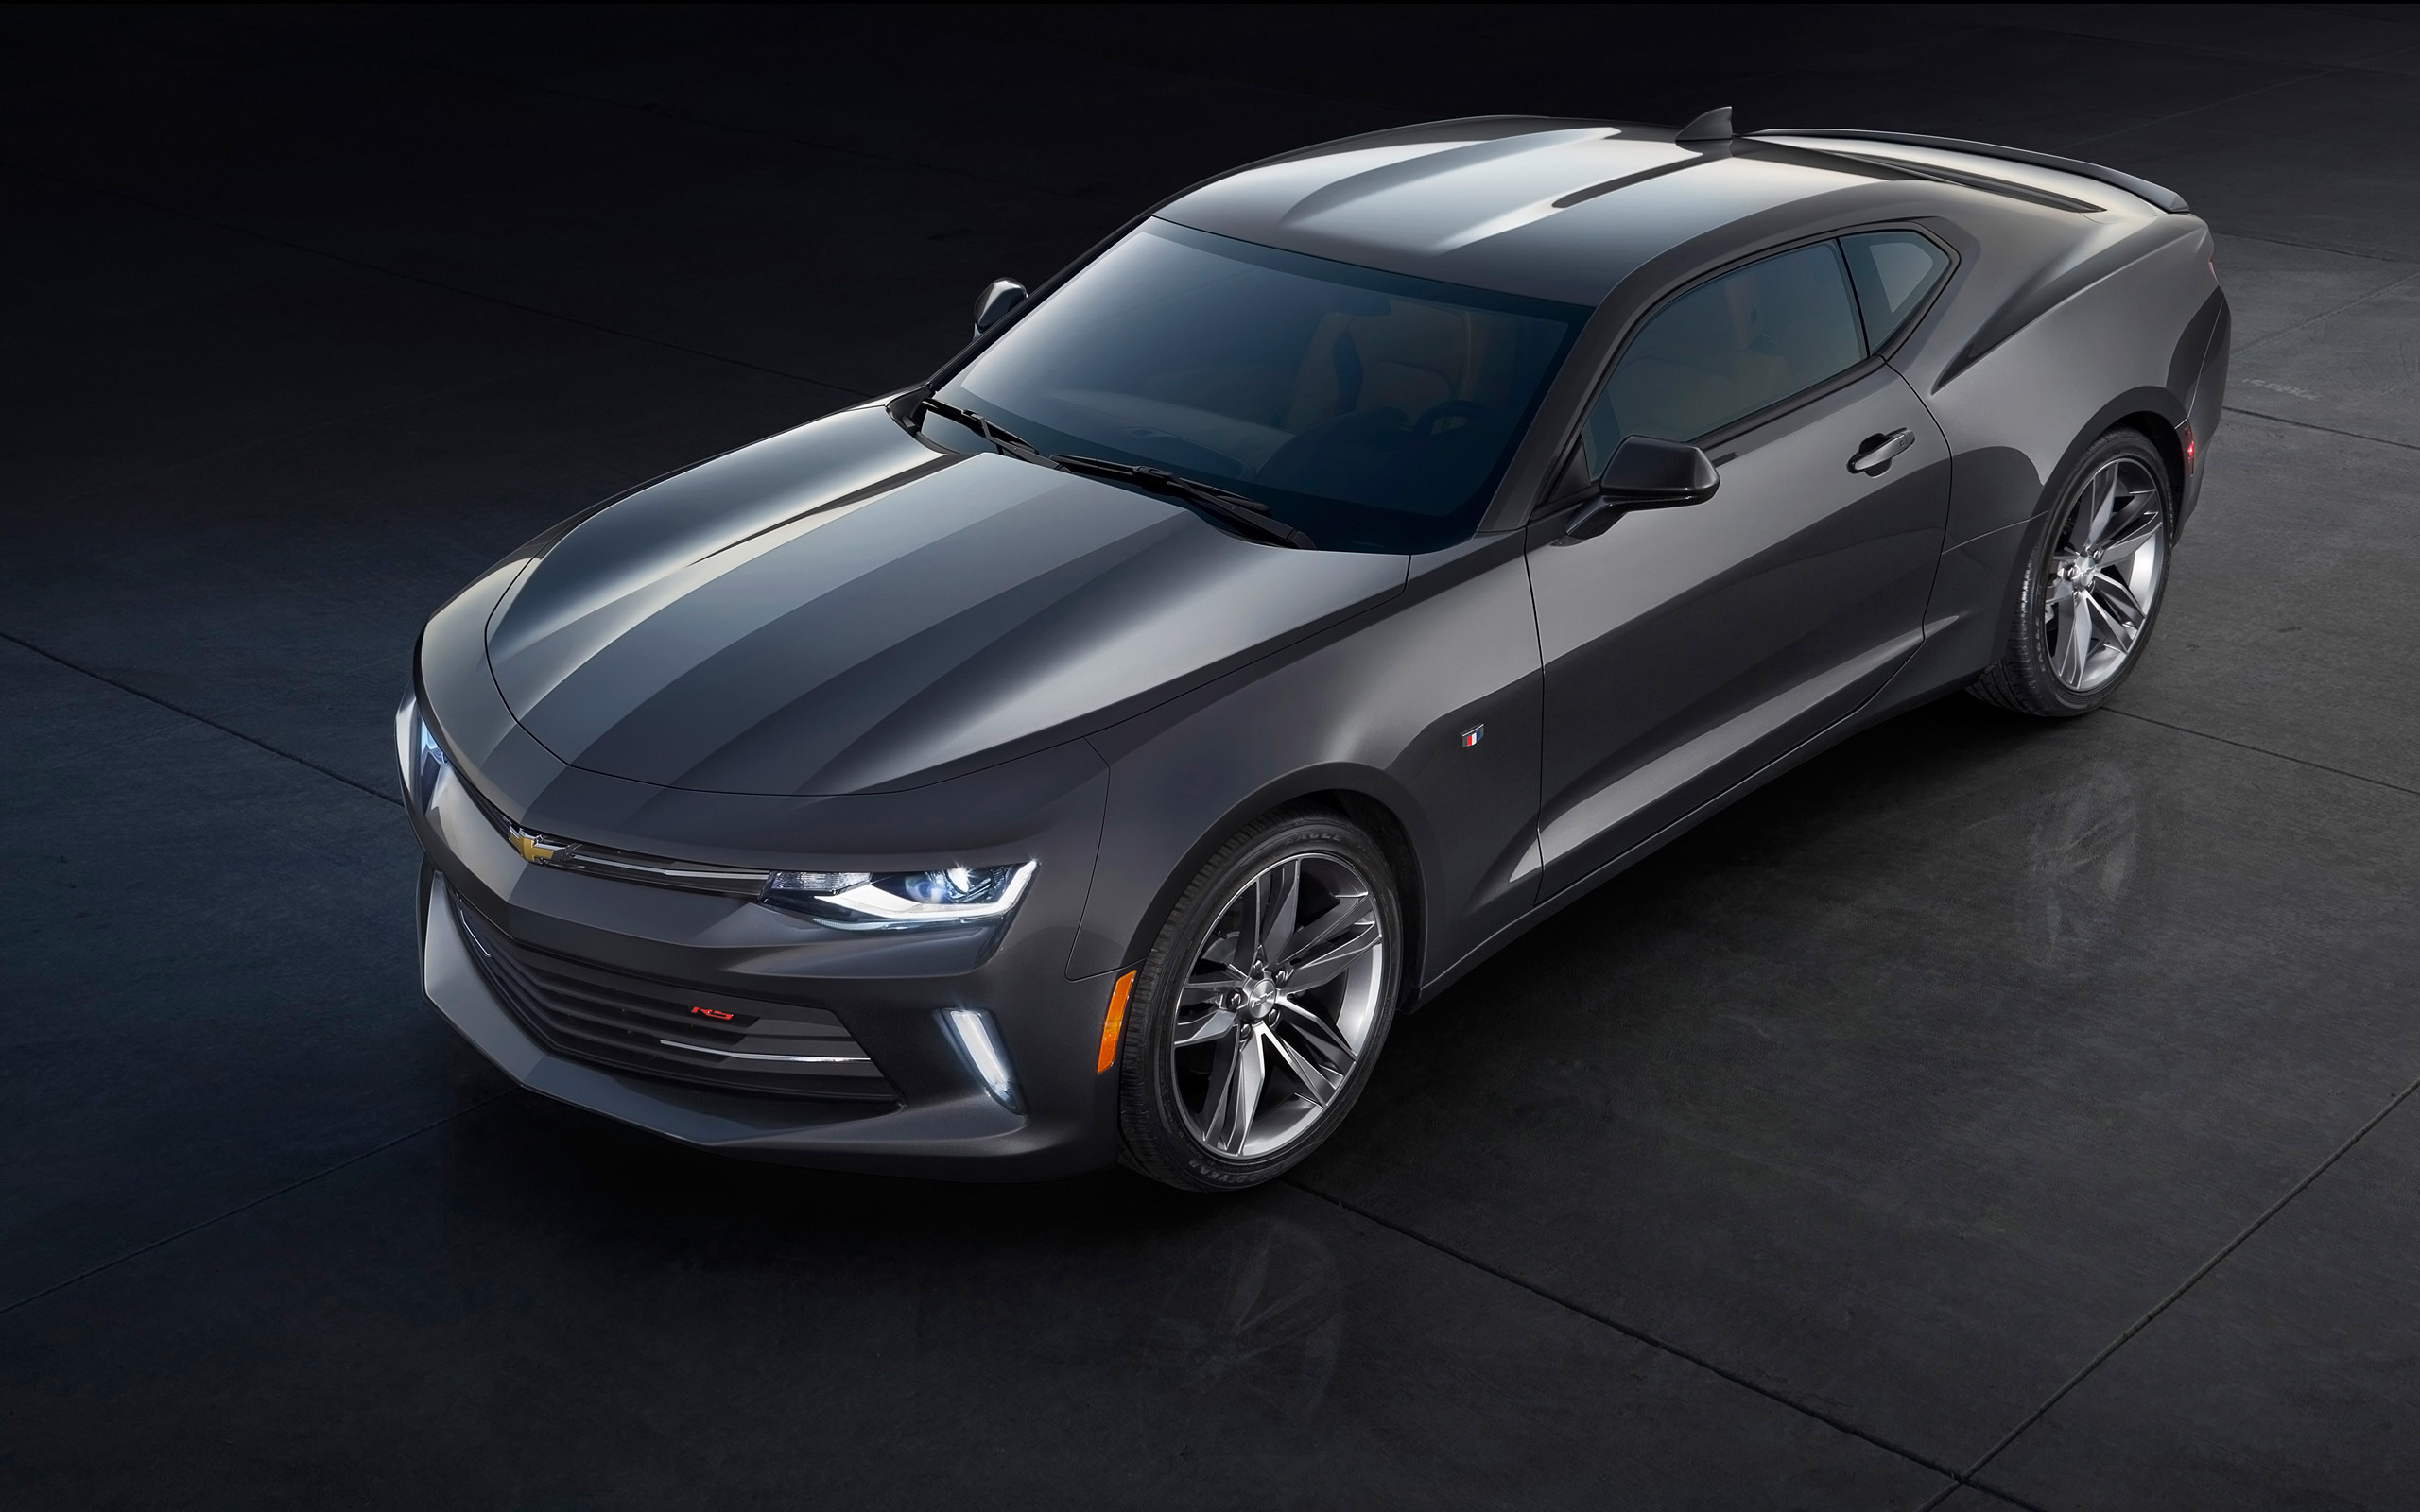 2016 Chevrolet Camaro RS 2 Wallpaper HD Car Wallpapers 2560x1600